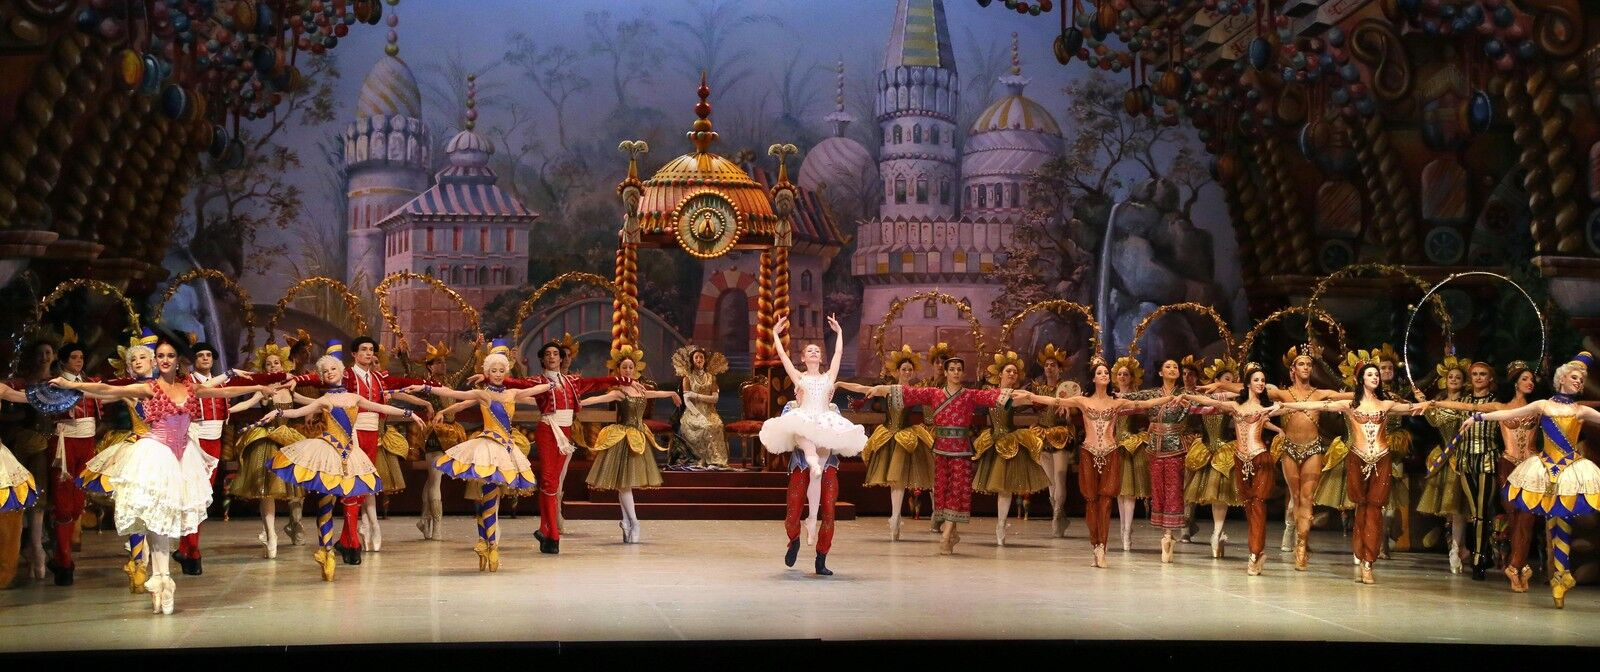 The Nutcracker Louisville | Louisville, KY | Whitney Hall | December 10, 2017